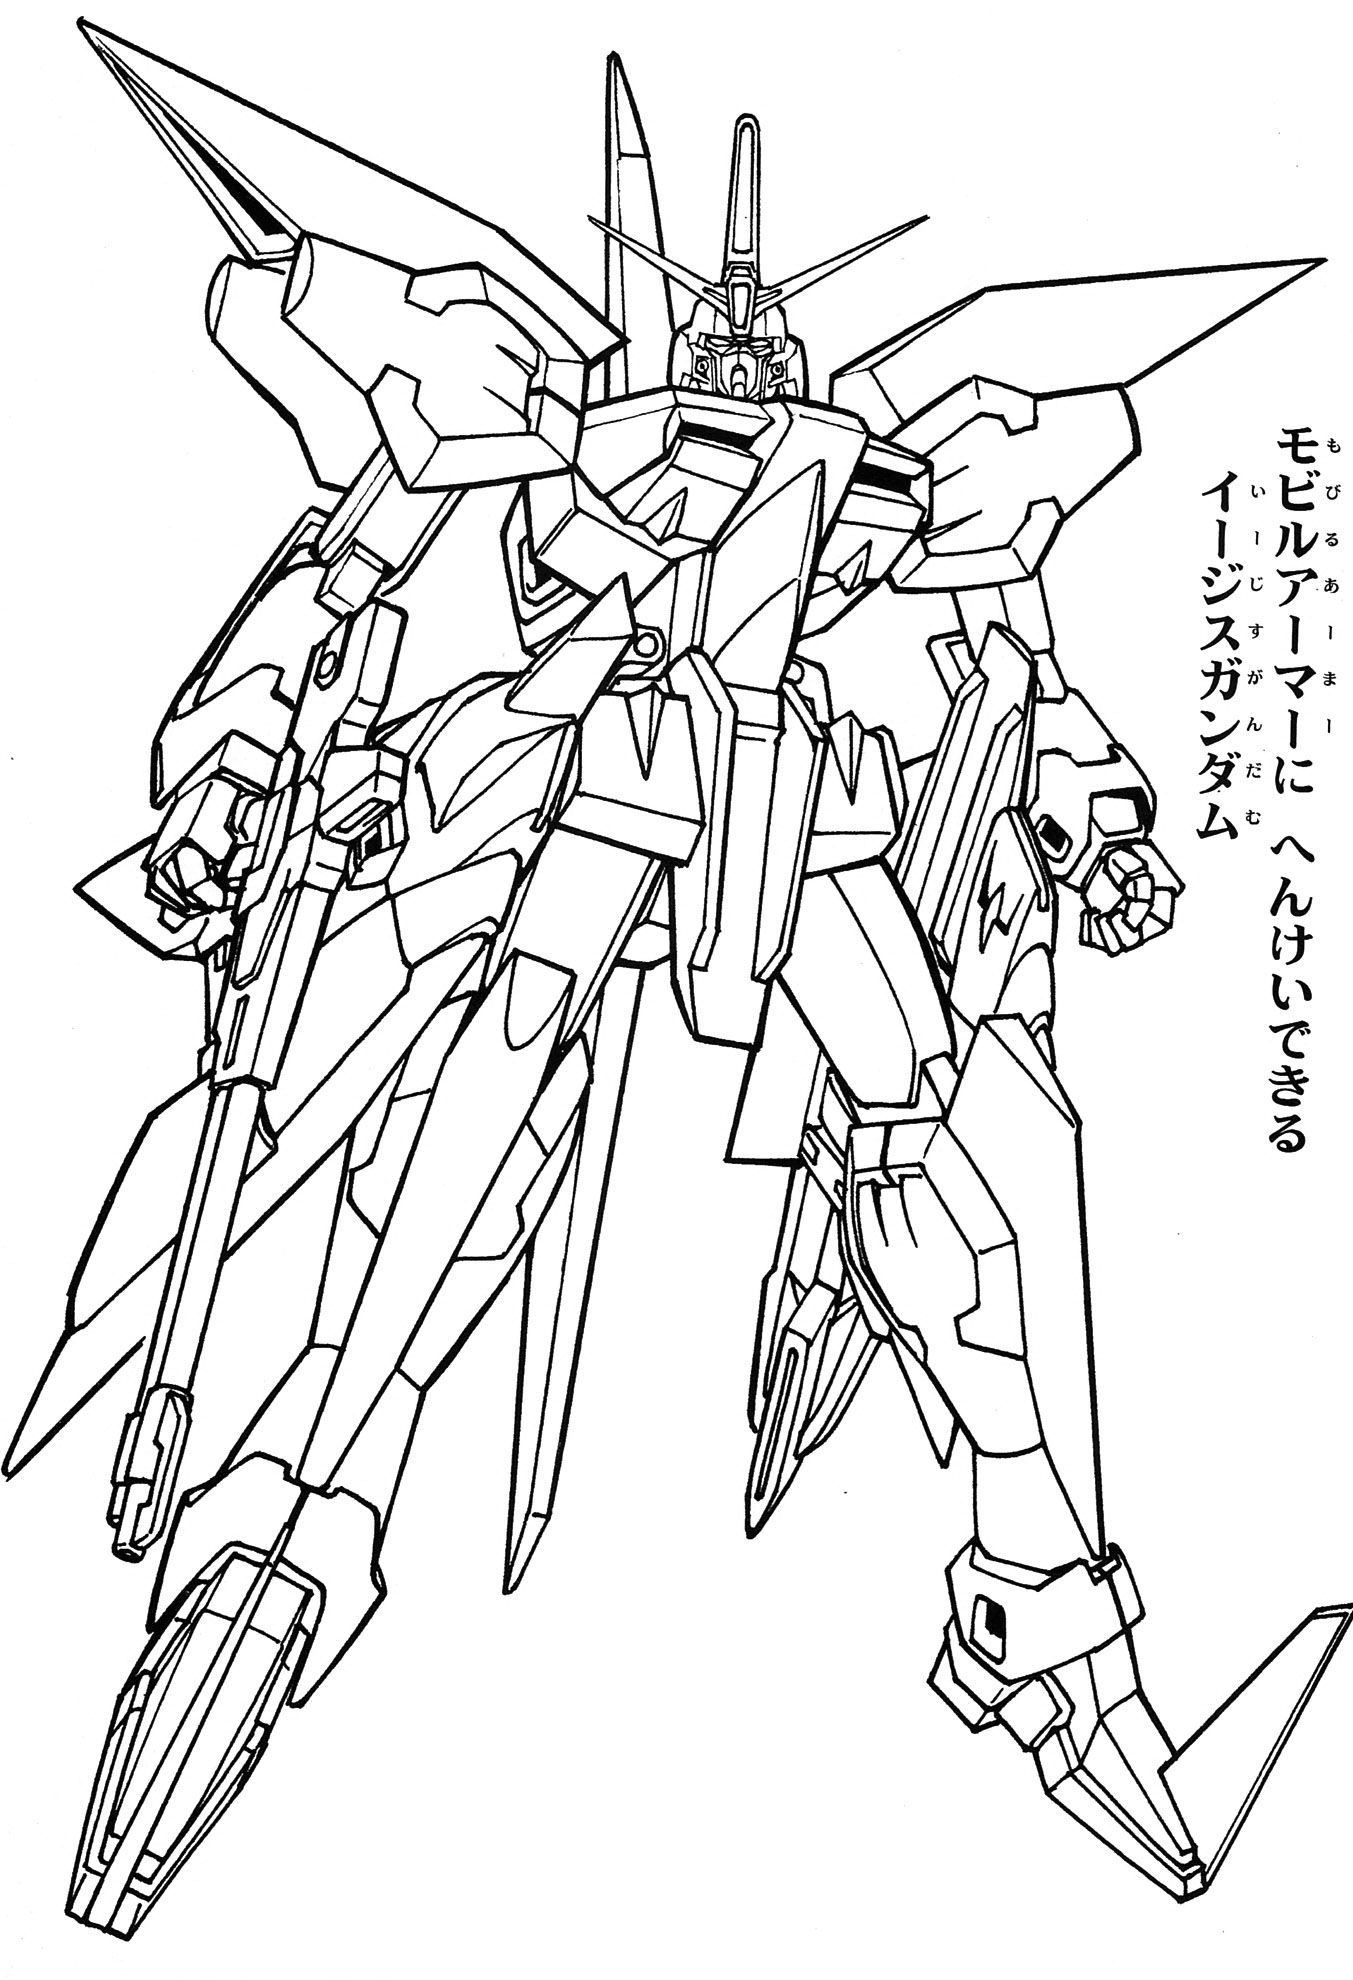 Gundam Coloring Pages Best Coloring Pages For Kids Sailor Moon Coloring Pages Coloring Pages Blog Colors